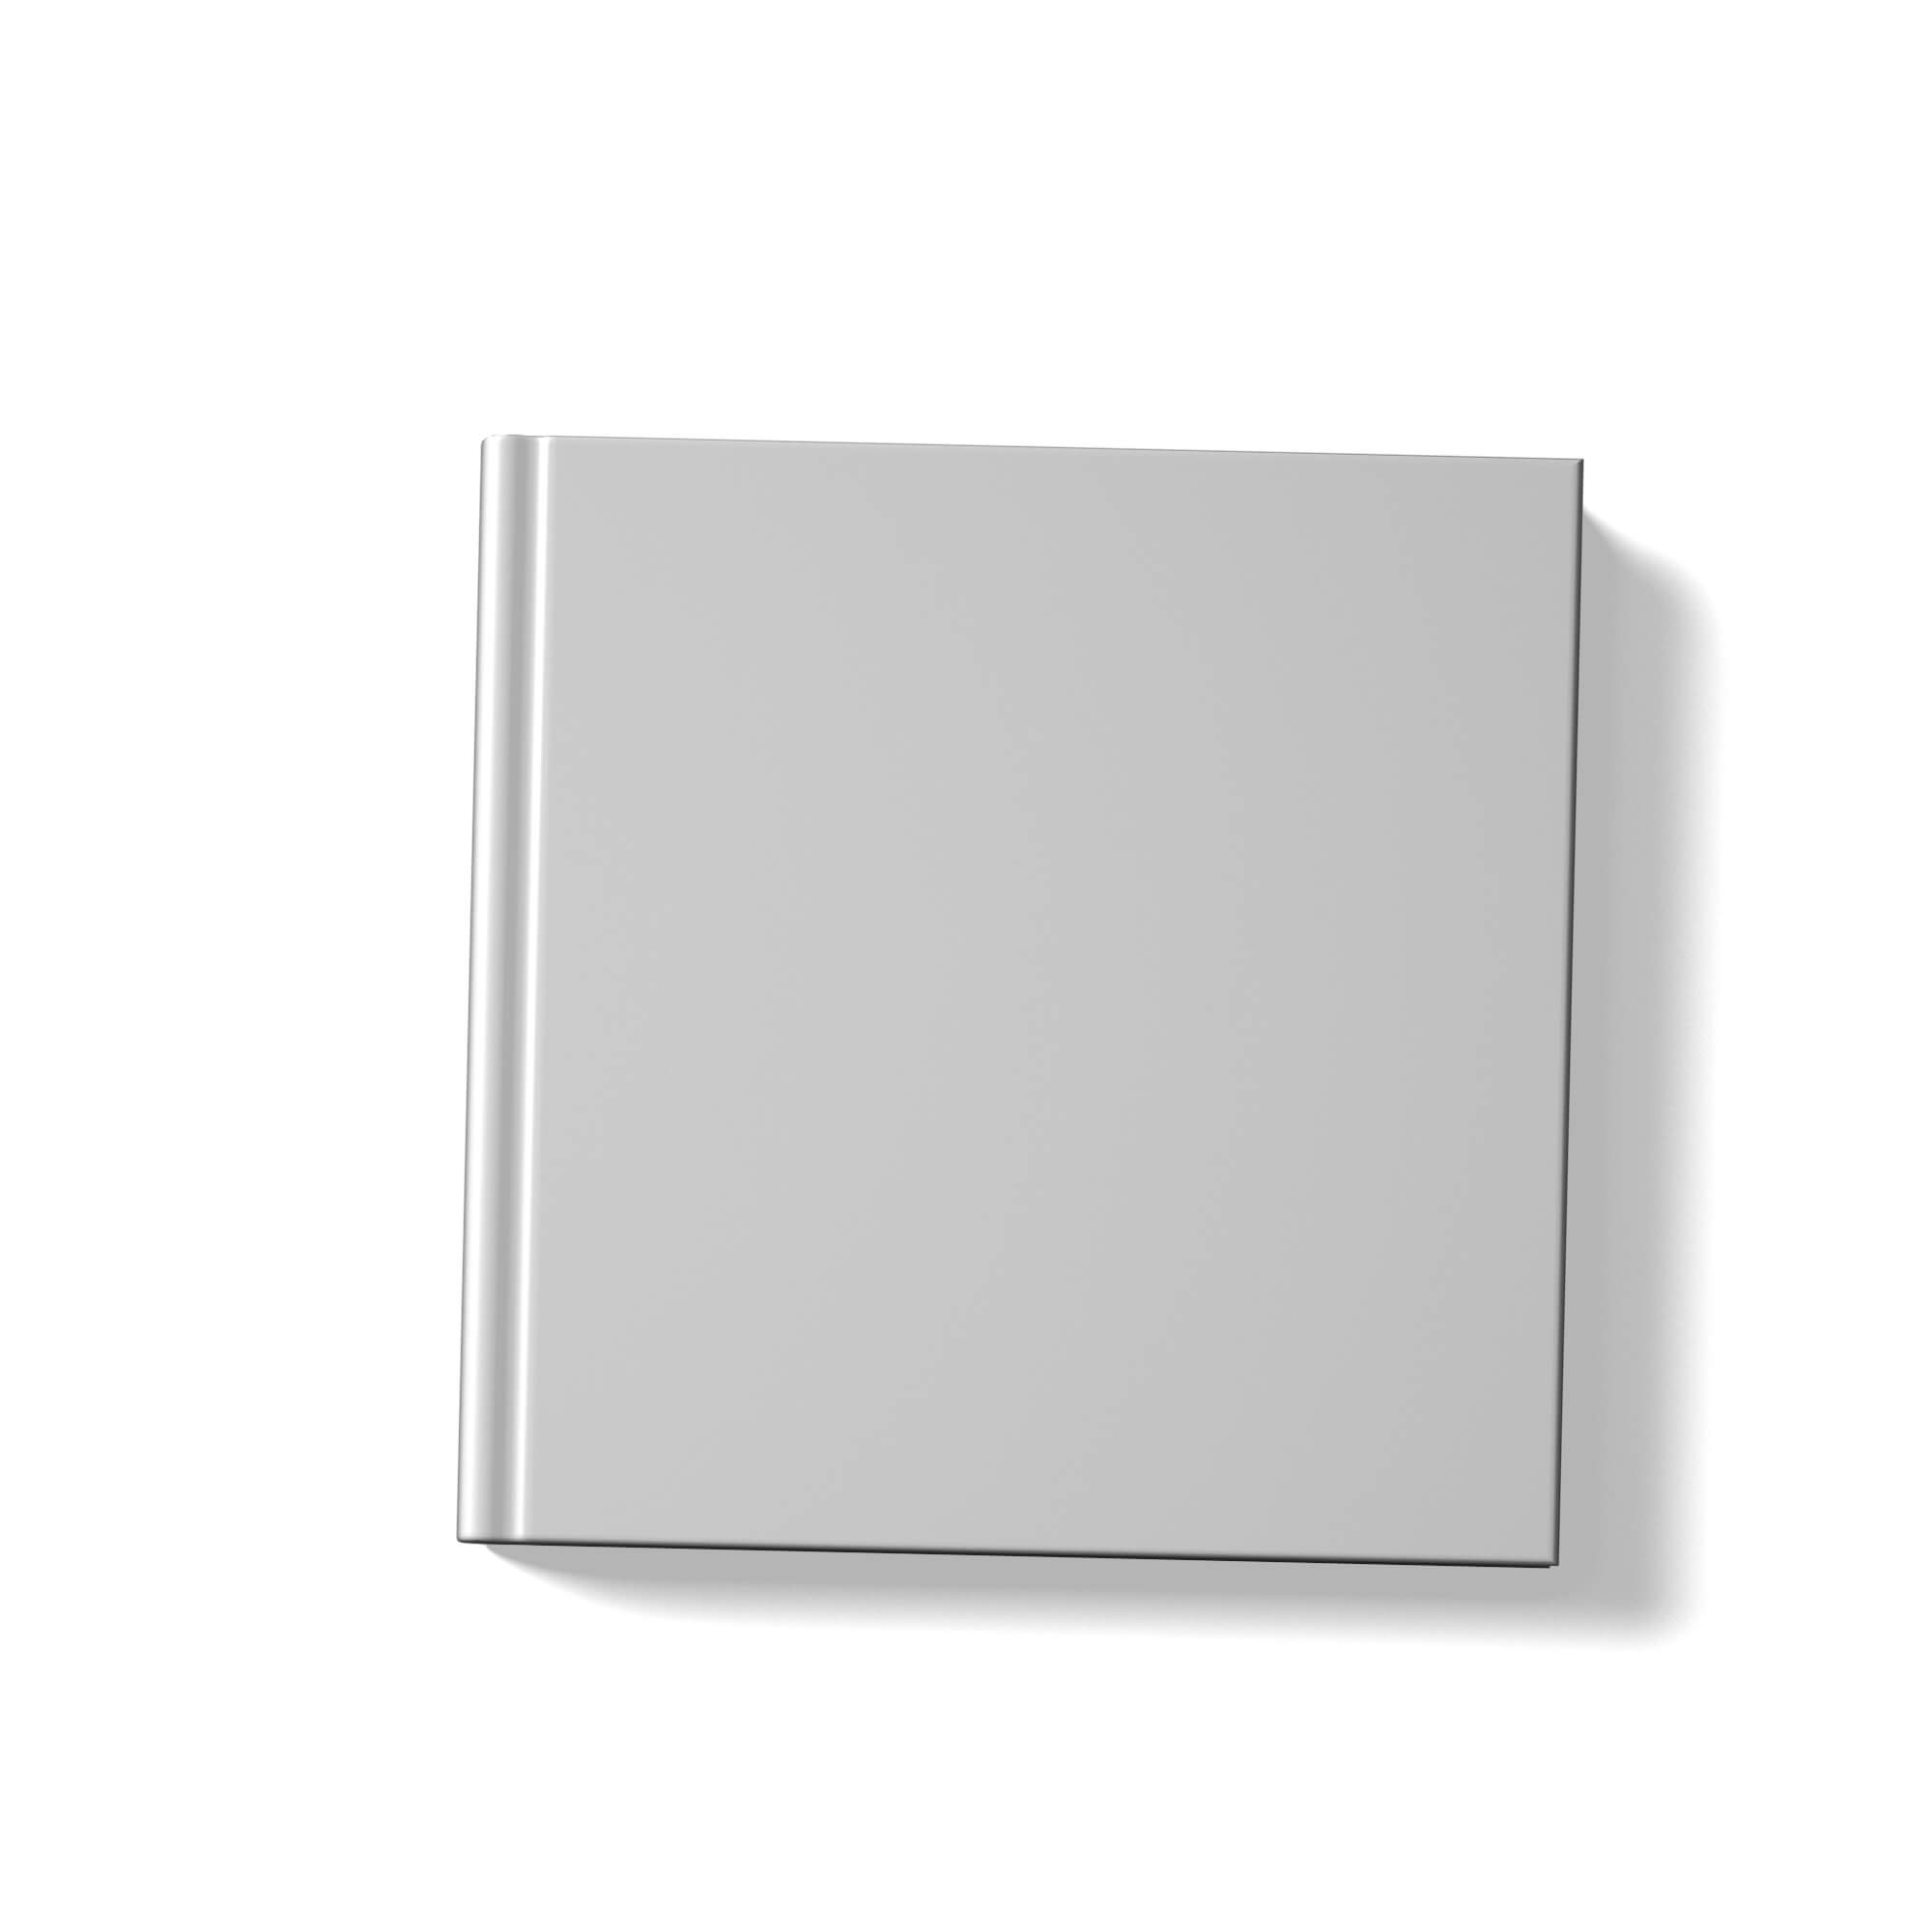 Blank Square Book Cover Mockup Free PSD Template